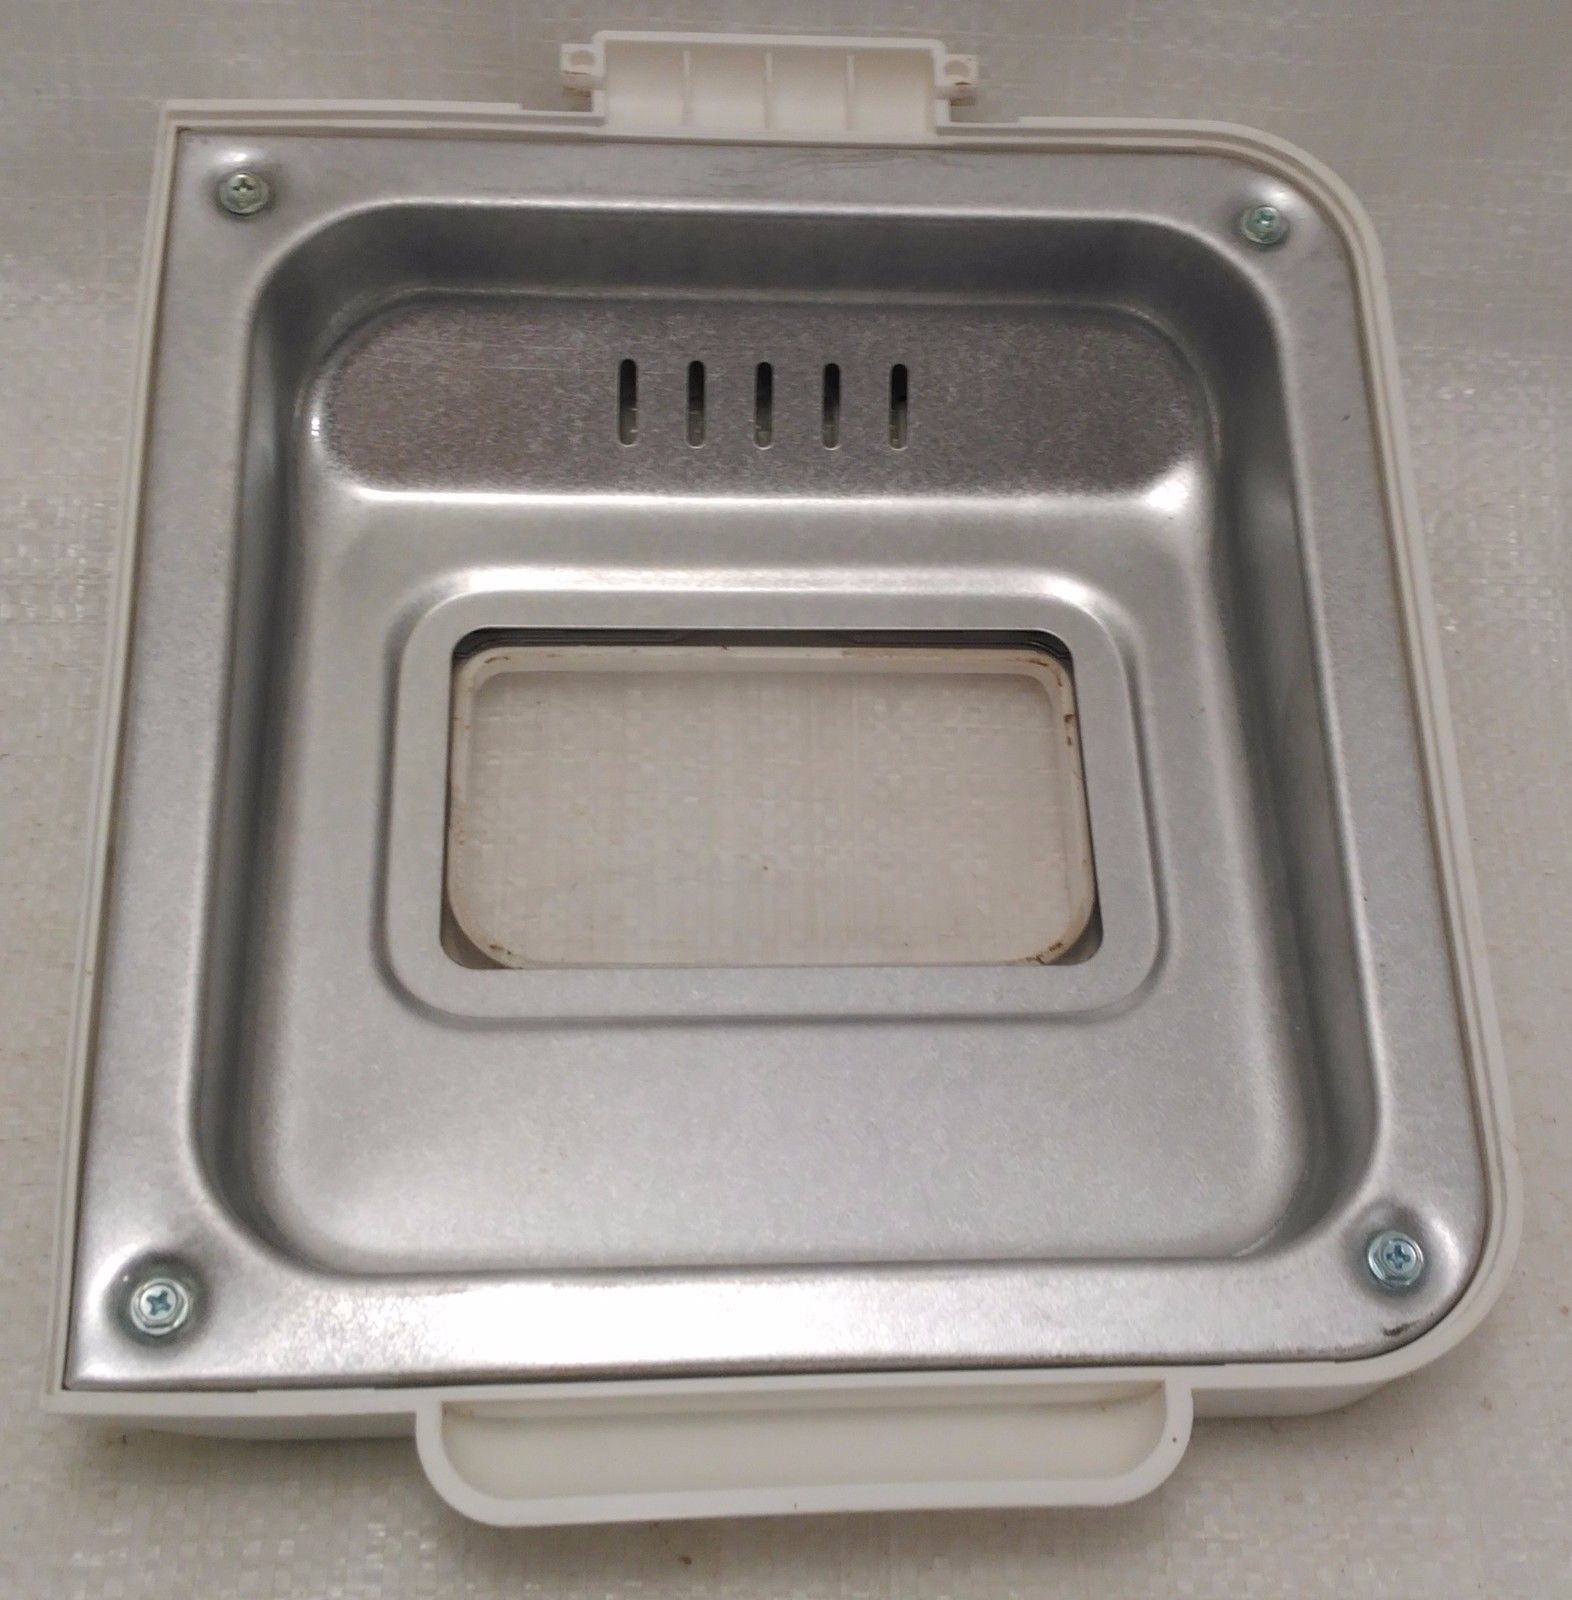 West Bend Bread Maker Machine Lid for Model 41073 (Used)